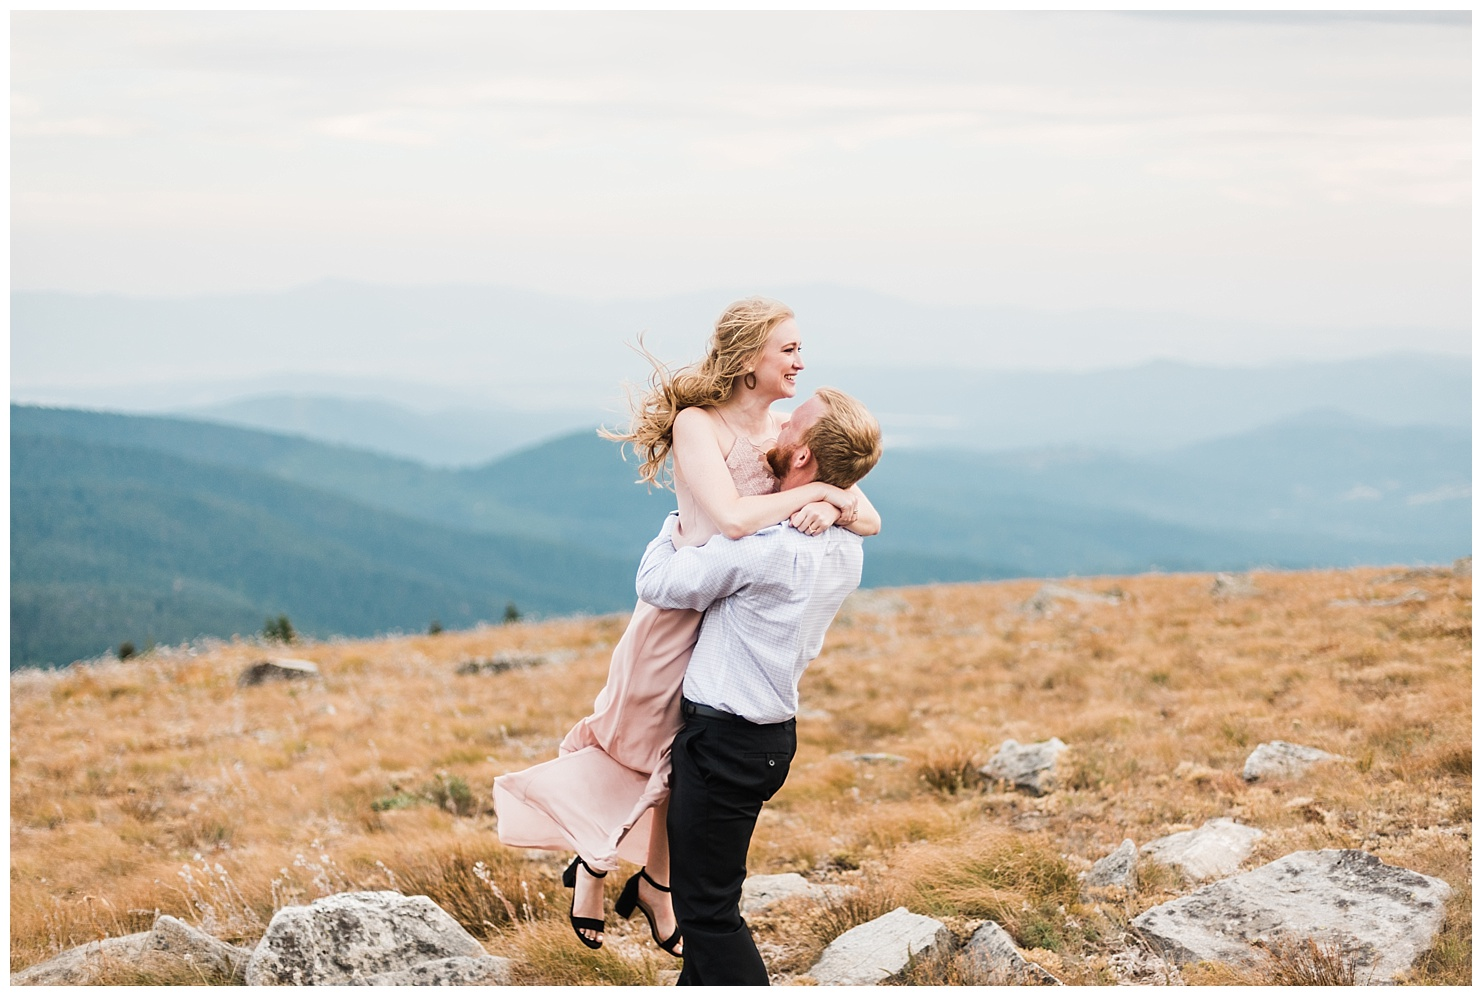 Melissa & Hunter on Mt. Spokane for their engagement session, taken by Forthright Photo